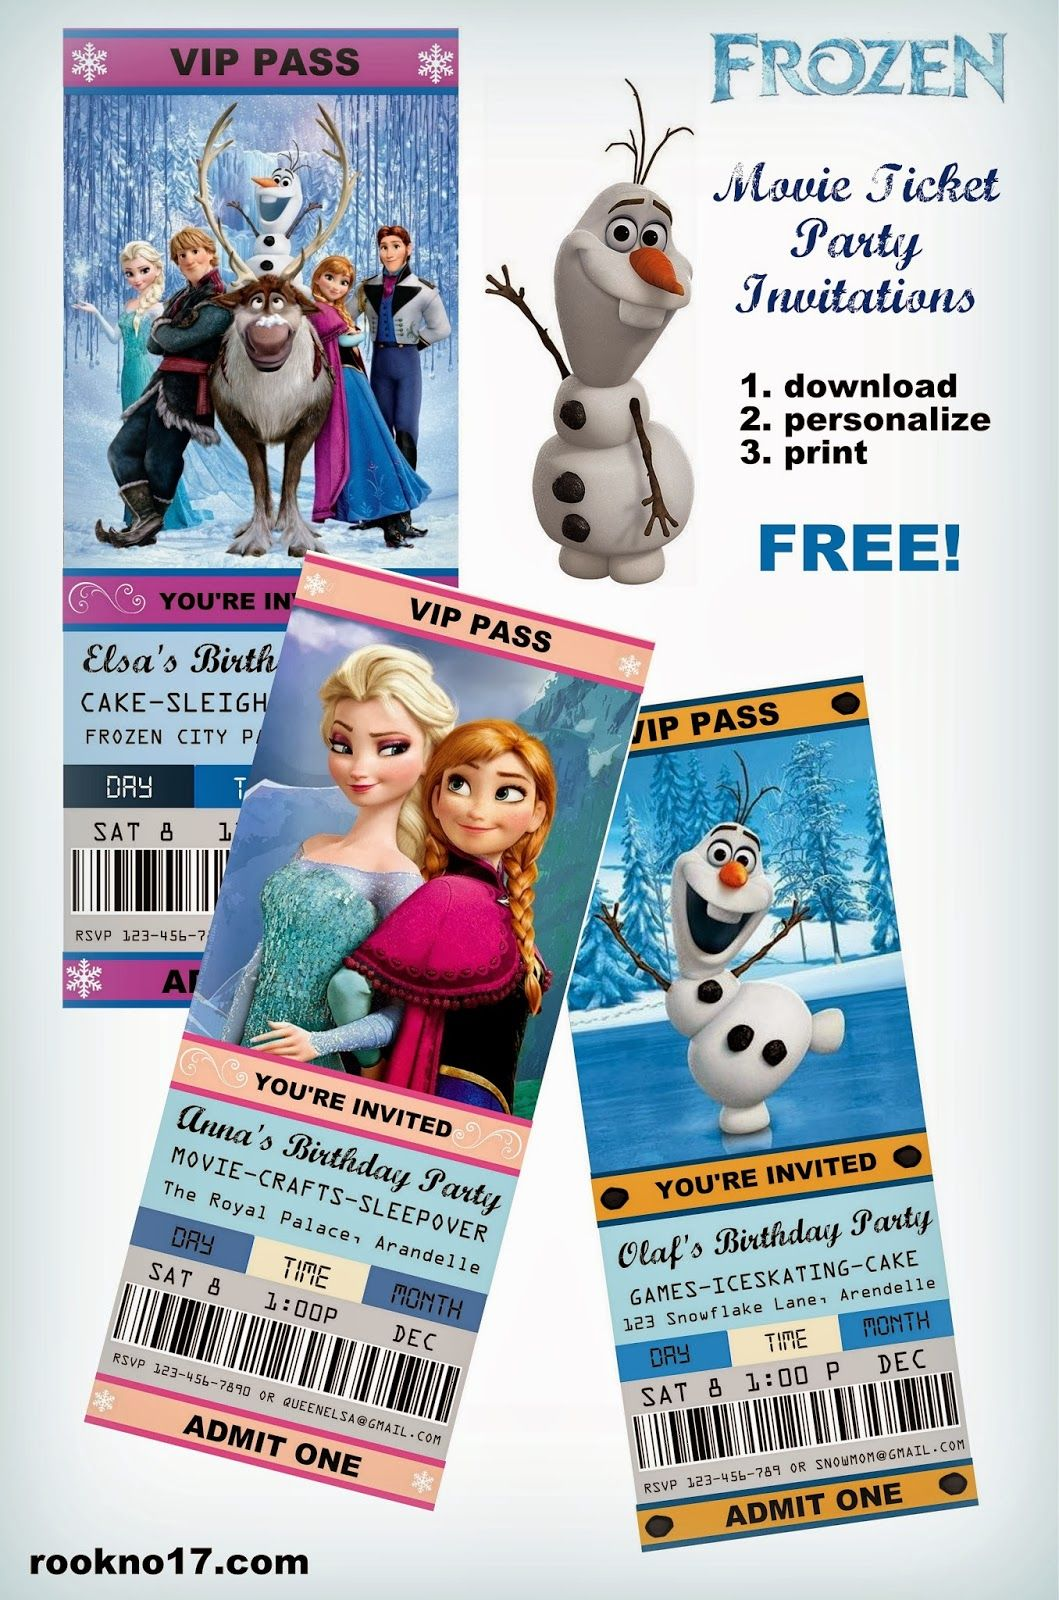 Movie Ticket Style Frozen Party Invitations Free Download And 20